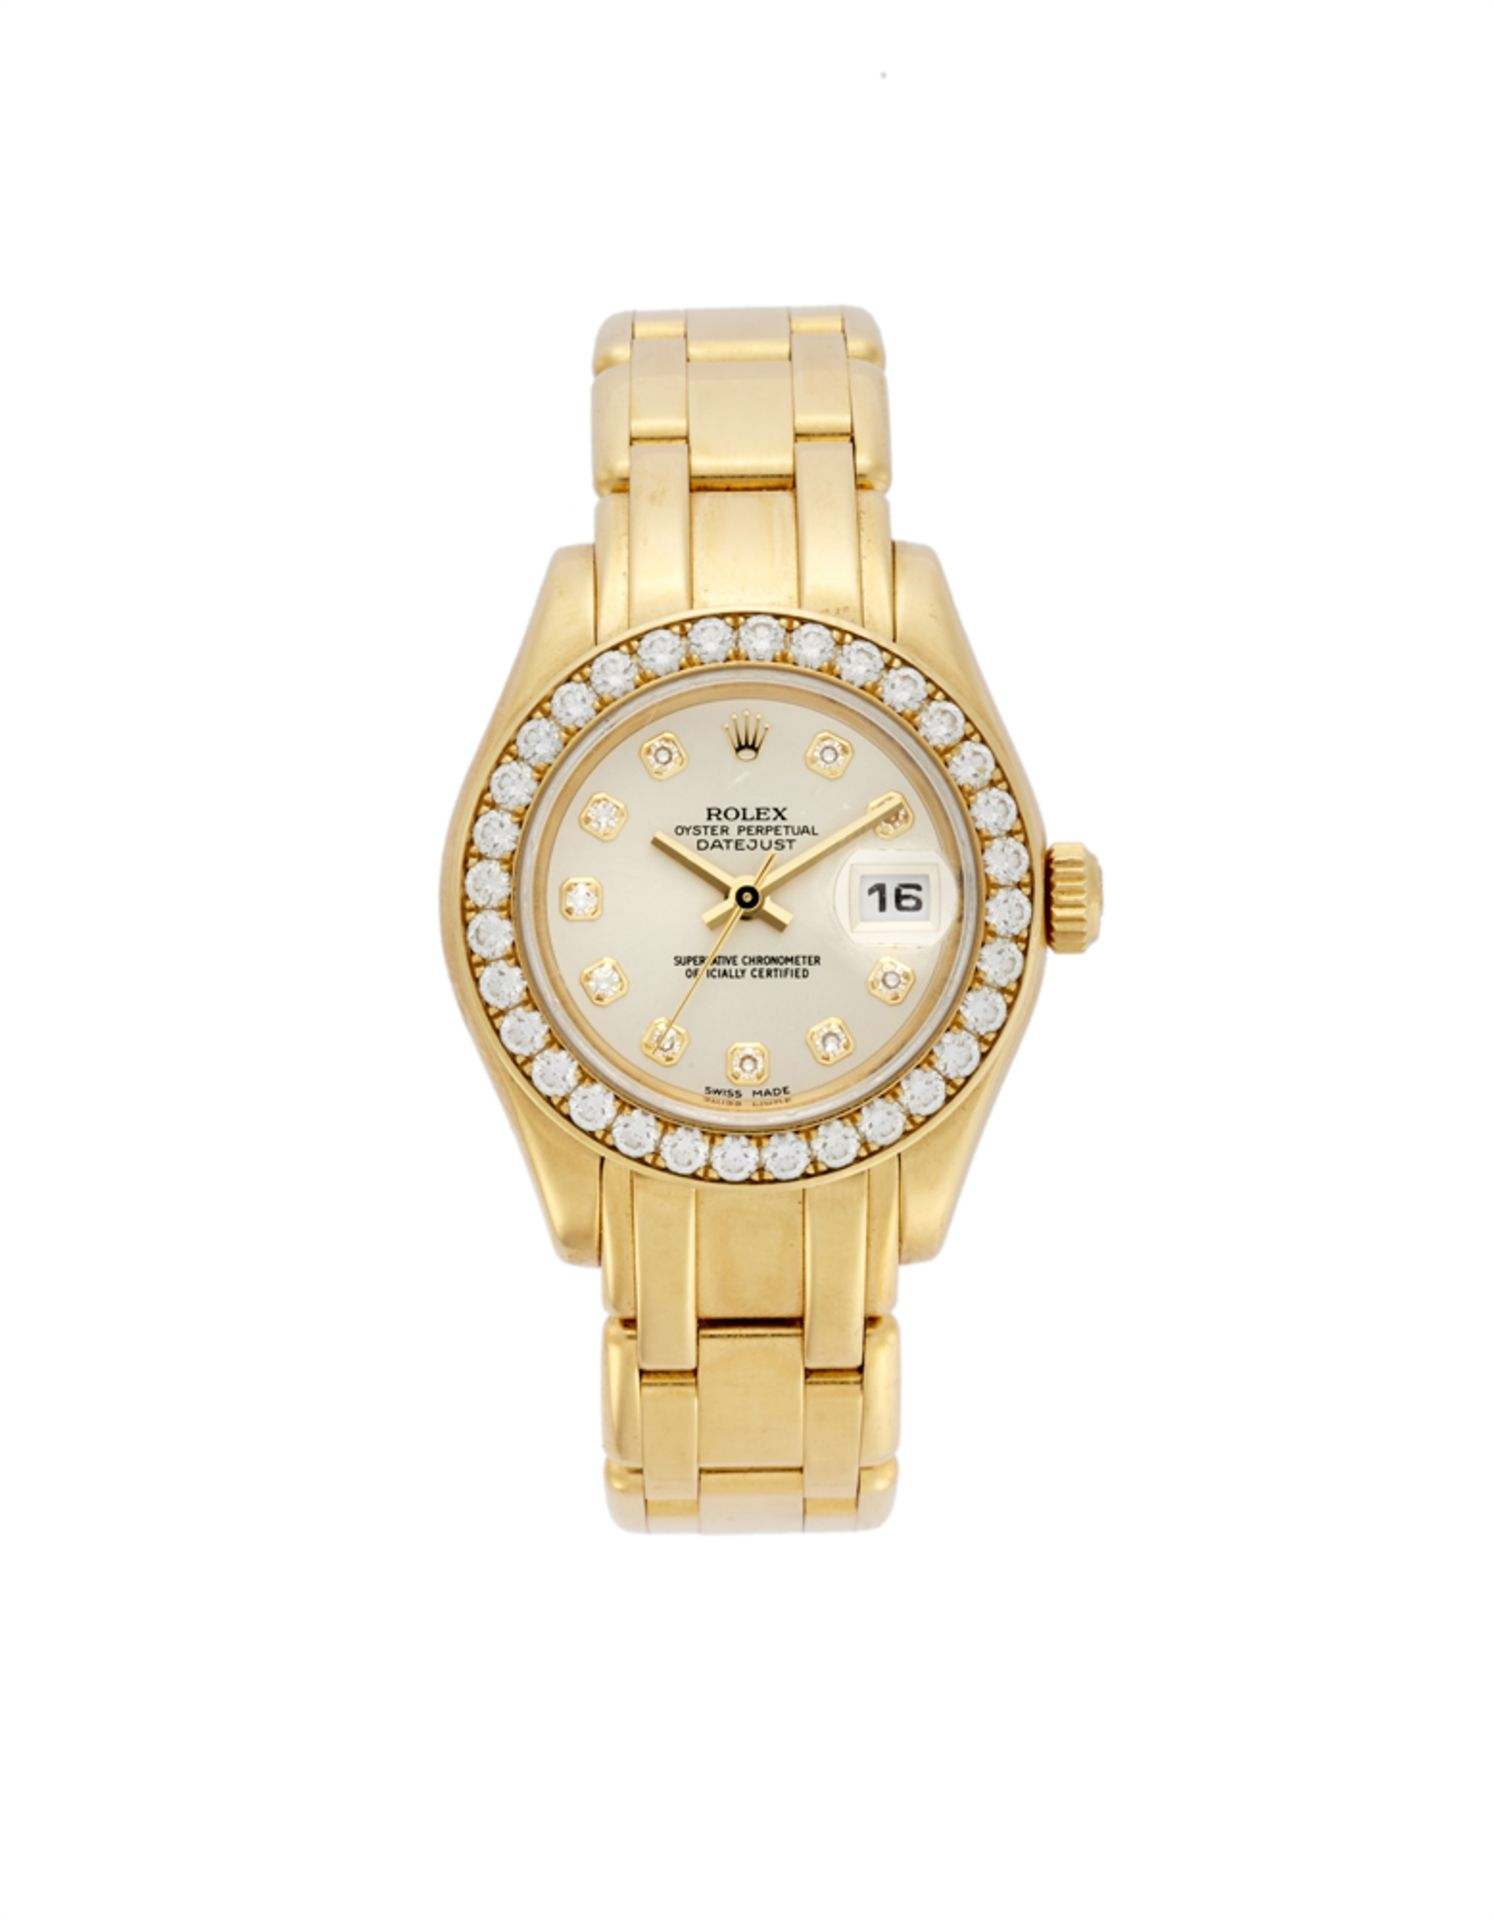 ROLEX DATEJUST Lady's 18K gold wristwatch with diamonds, gold bracelet2000sDial, movement and case